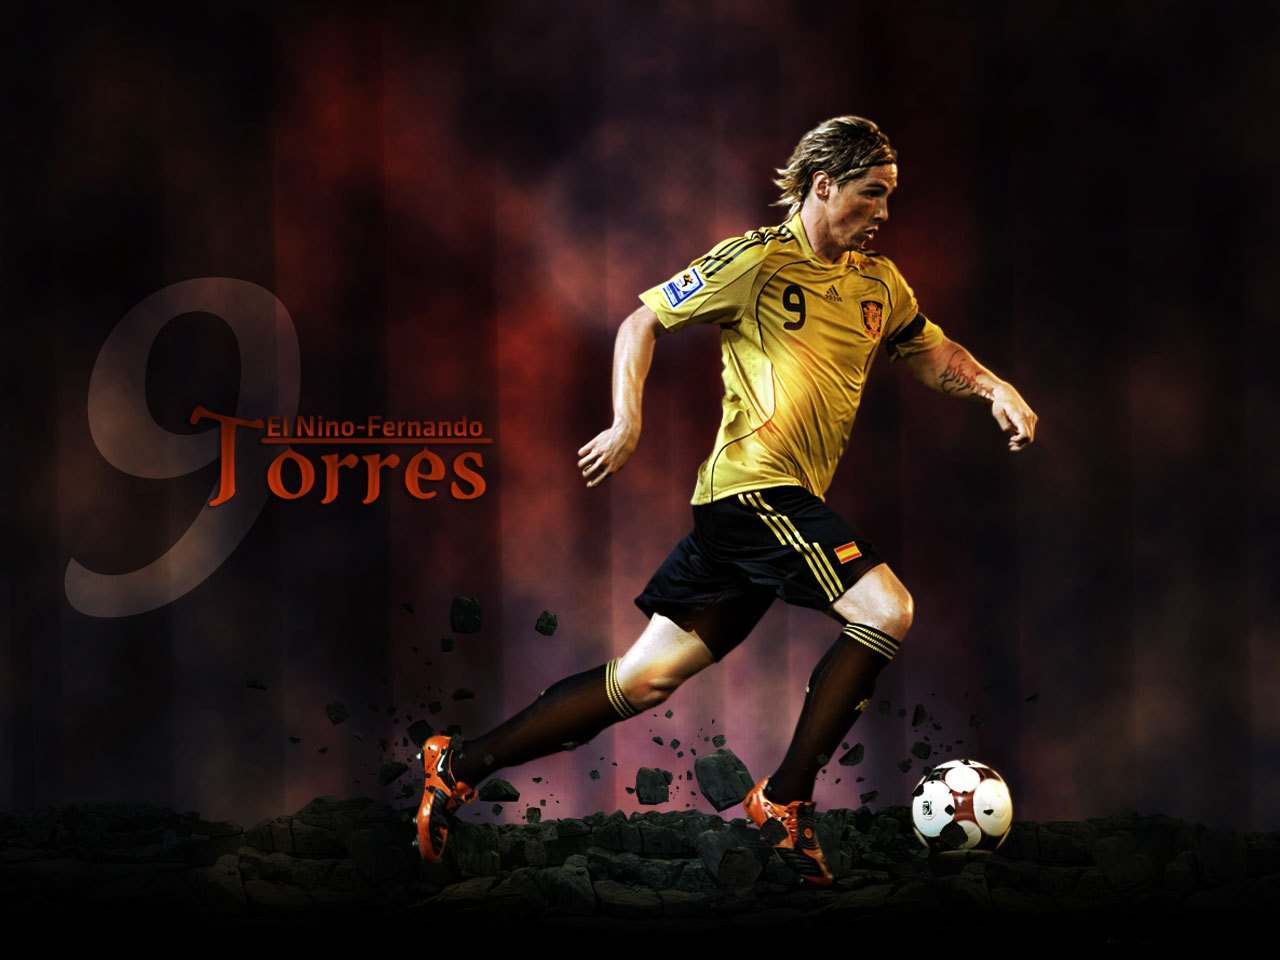 Hd Background Wallpaper 800x600: Fernando Torres Latest HD Wallpapers 2013